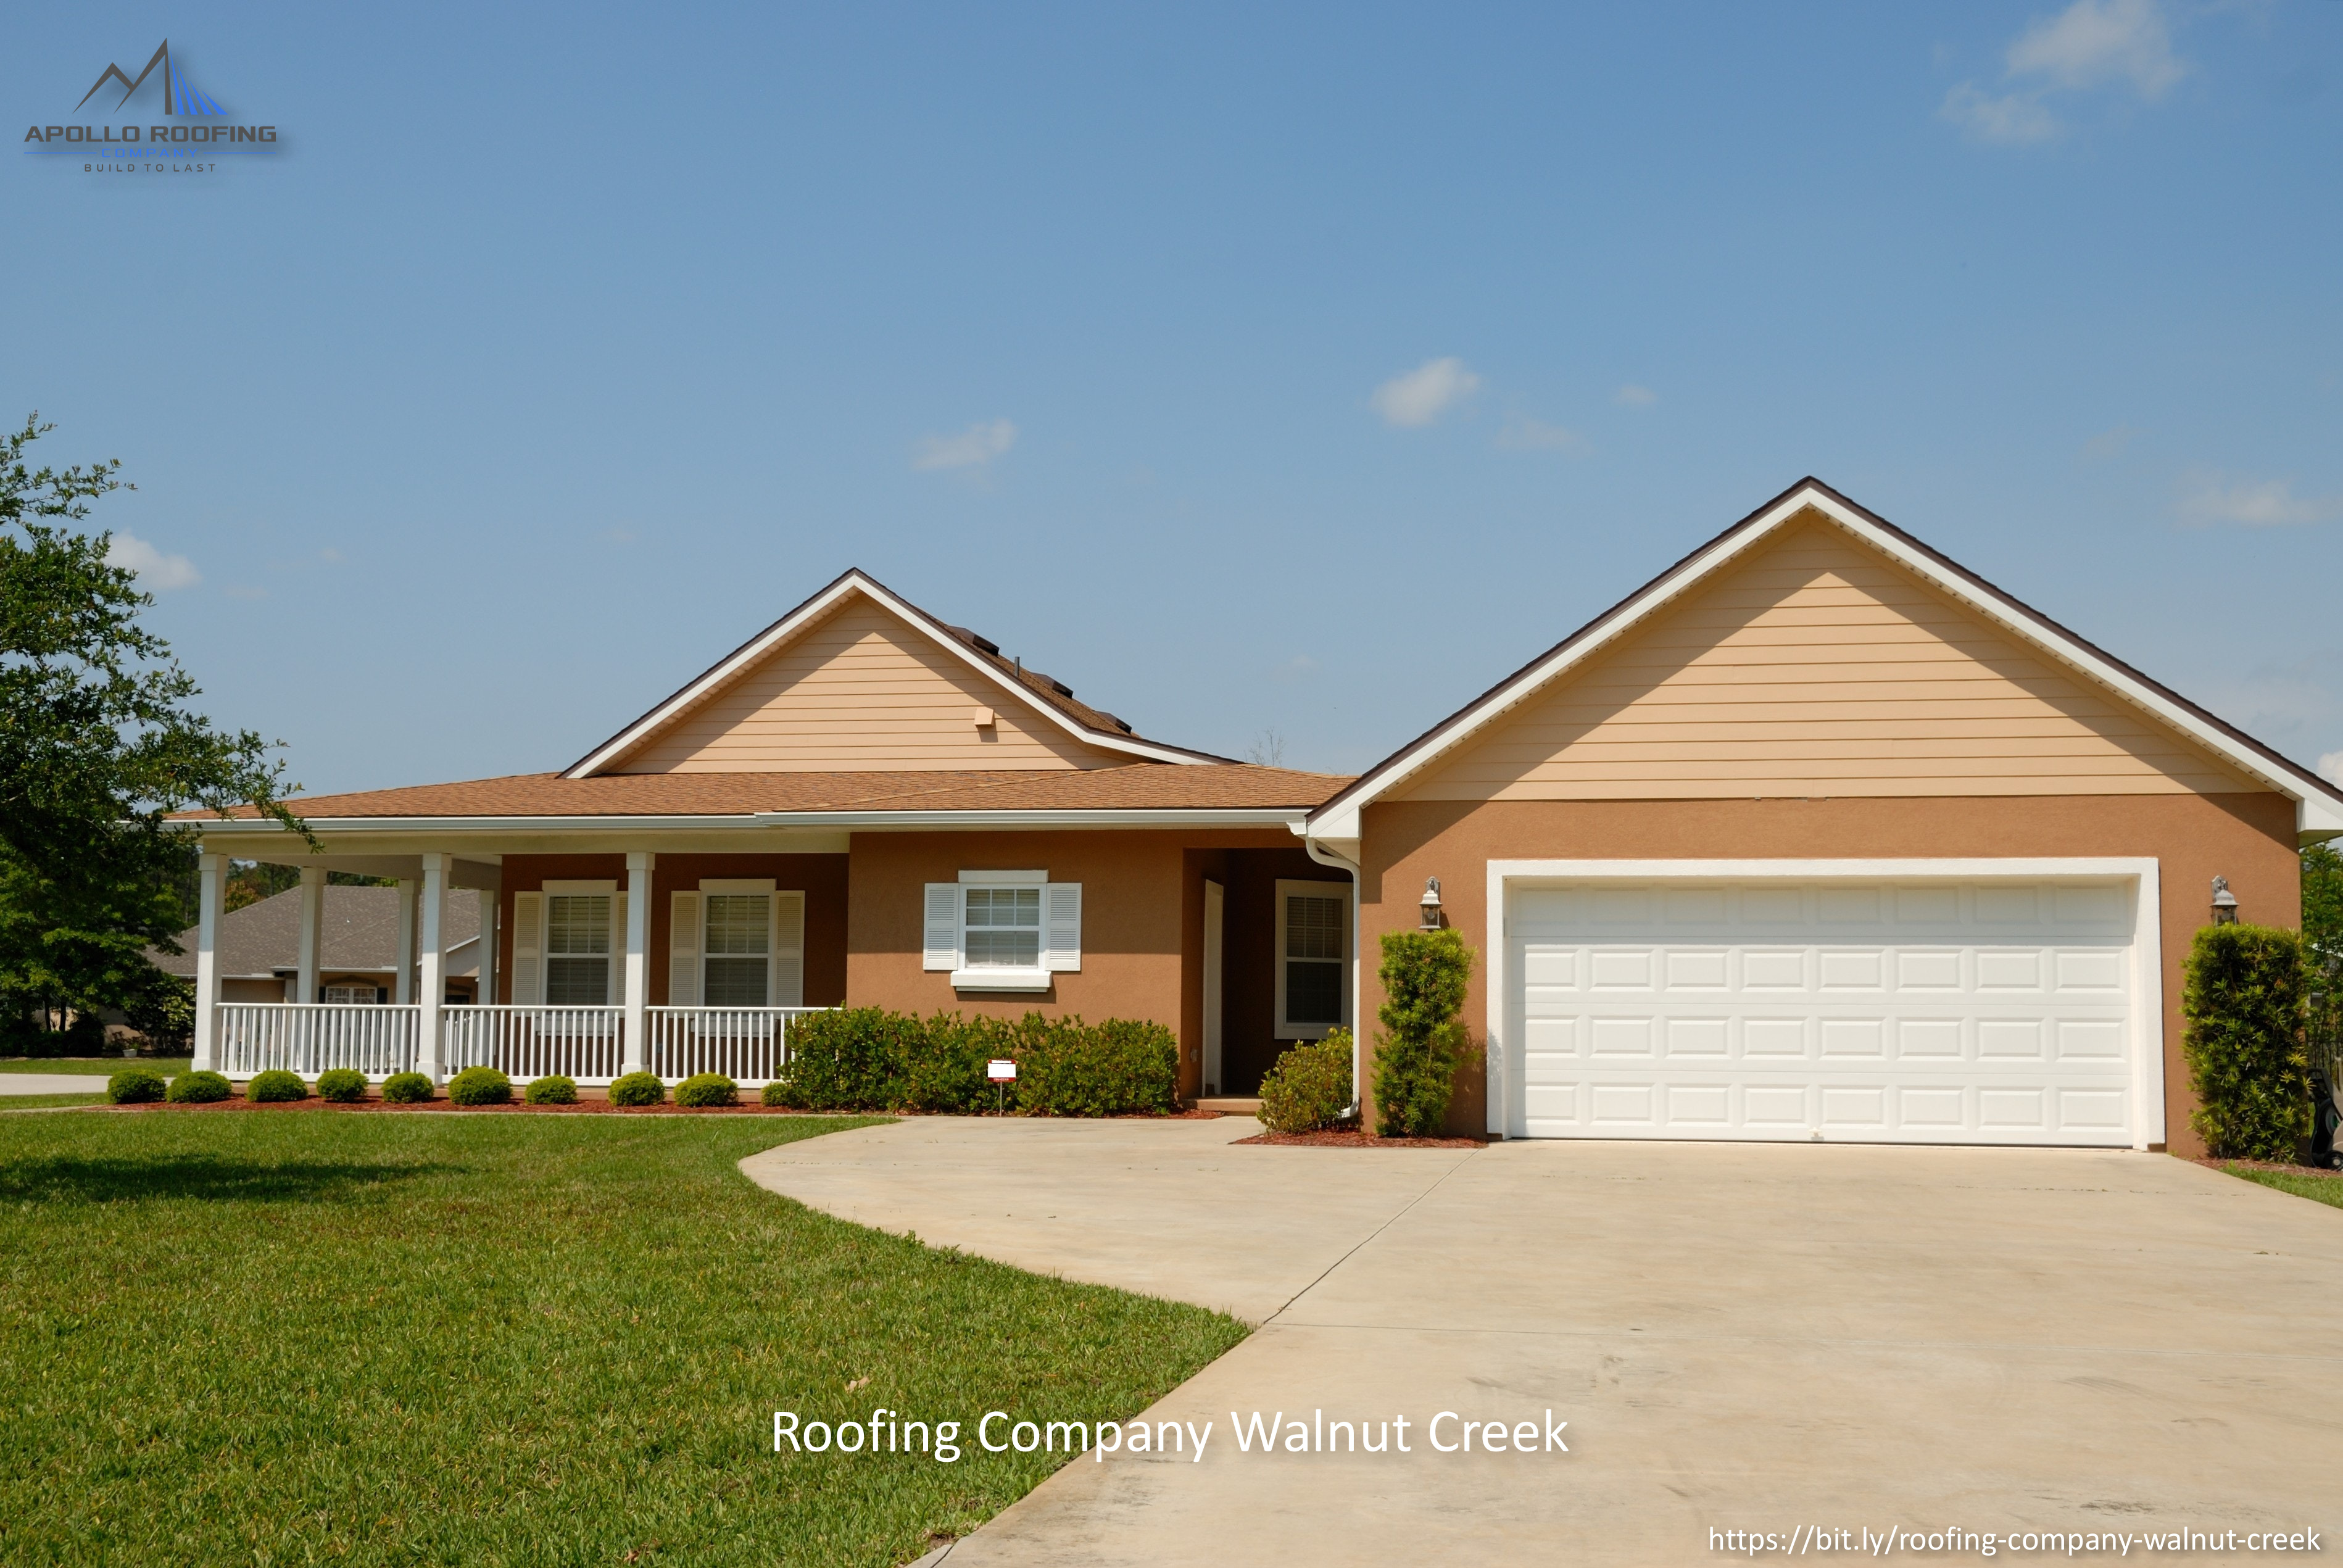 Apollo Roofing Company Highlights the Services they Offer in Walnut Creek